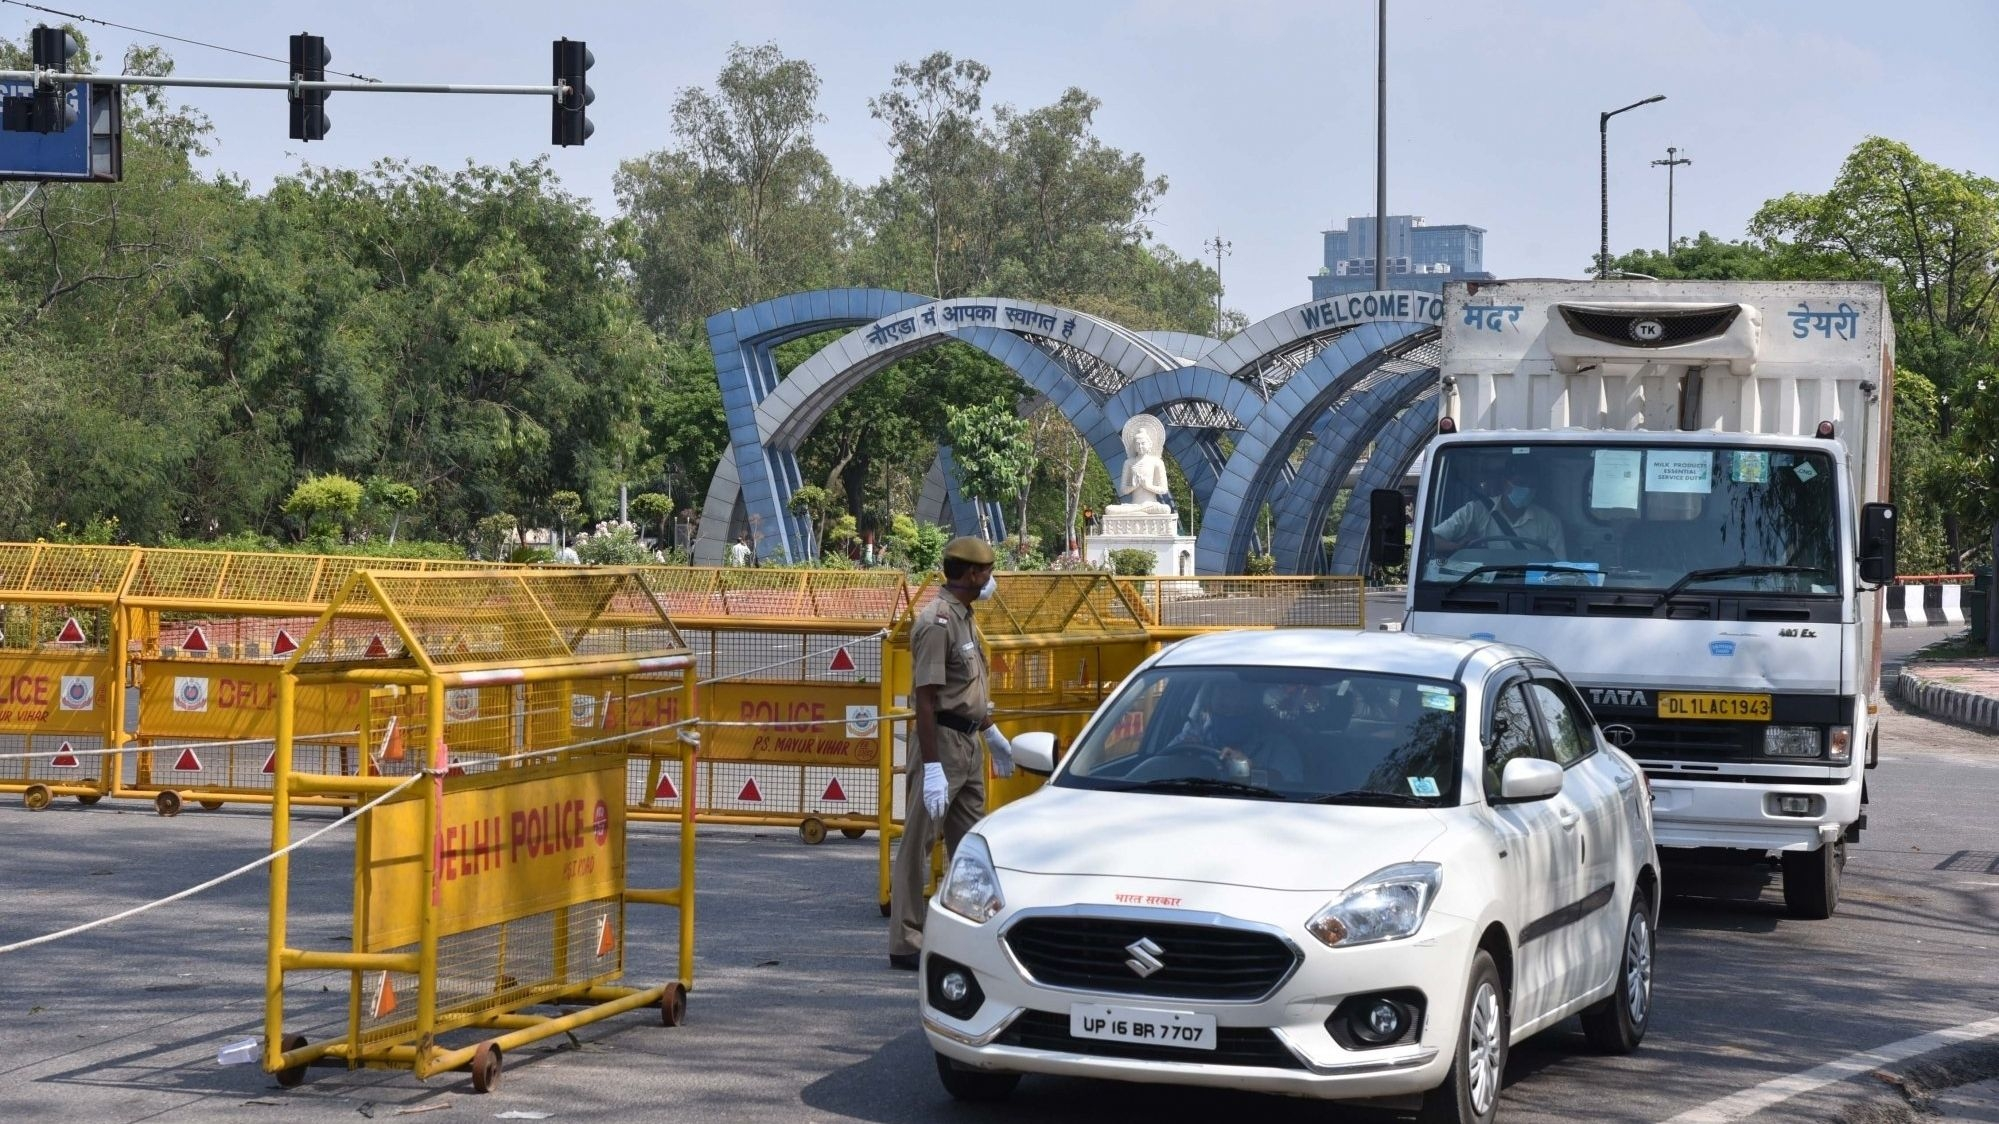 Delhi Chief Minister Arvind Kejriwal announced that borders of the national capital will be sealed for one week, starting Monday, 1 June. However, essential services will be exempted, he added.